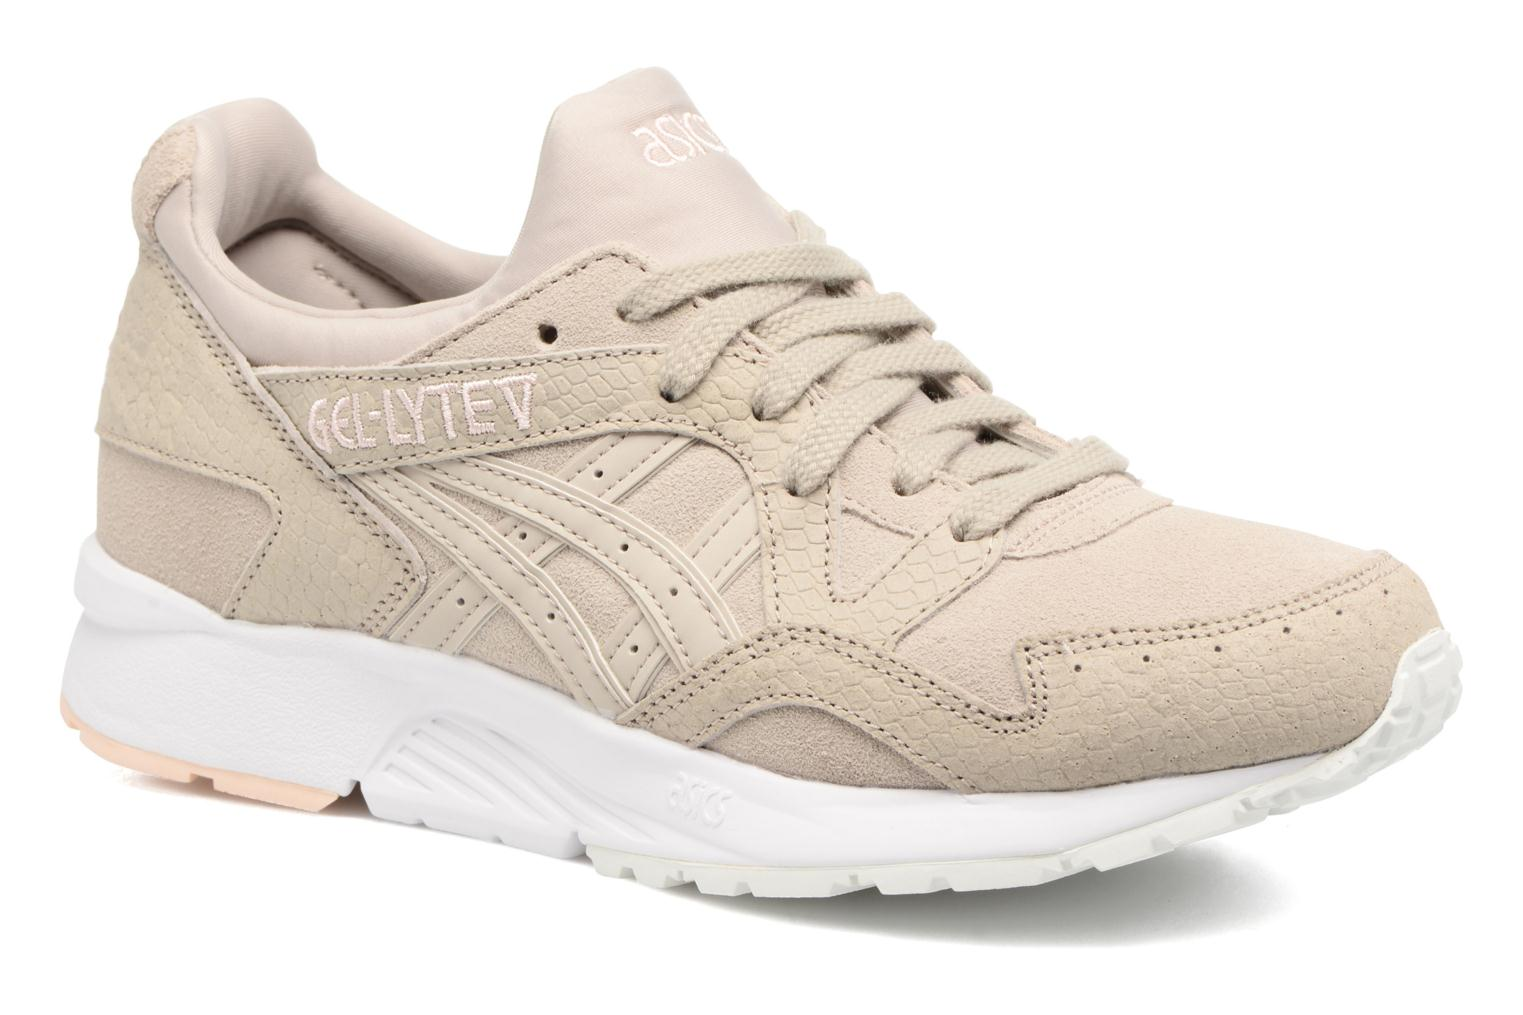 Gel-Lyte V W by Asics